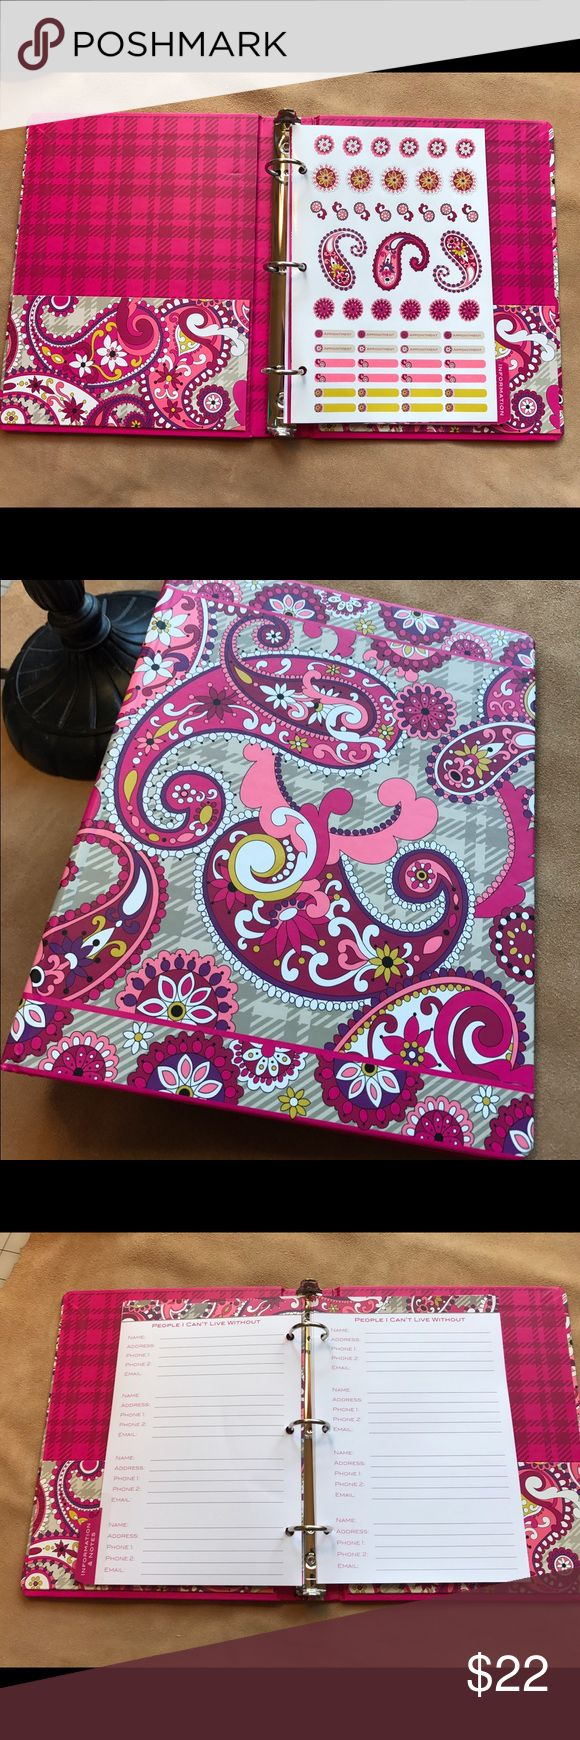 VERA BRADLEY Agenda Planner 3-Ring Binder Notebook VERA BRADLEY Agenda Planner 3-Ring Binder Notebook Refillable RARE retired Pink Paisley  This planner is from previous years but also has no actual month pages, and of course, you could add those 2017 pages from another source. Comes with the full sticker page and Some pages for addresses and notes. Refillable 7x9 3 ring binder Vera Bradley Other